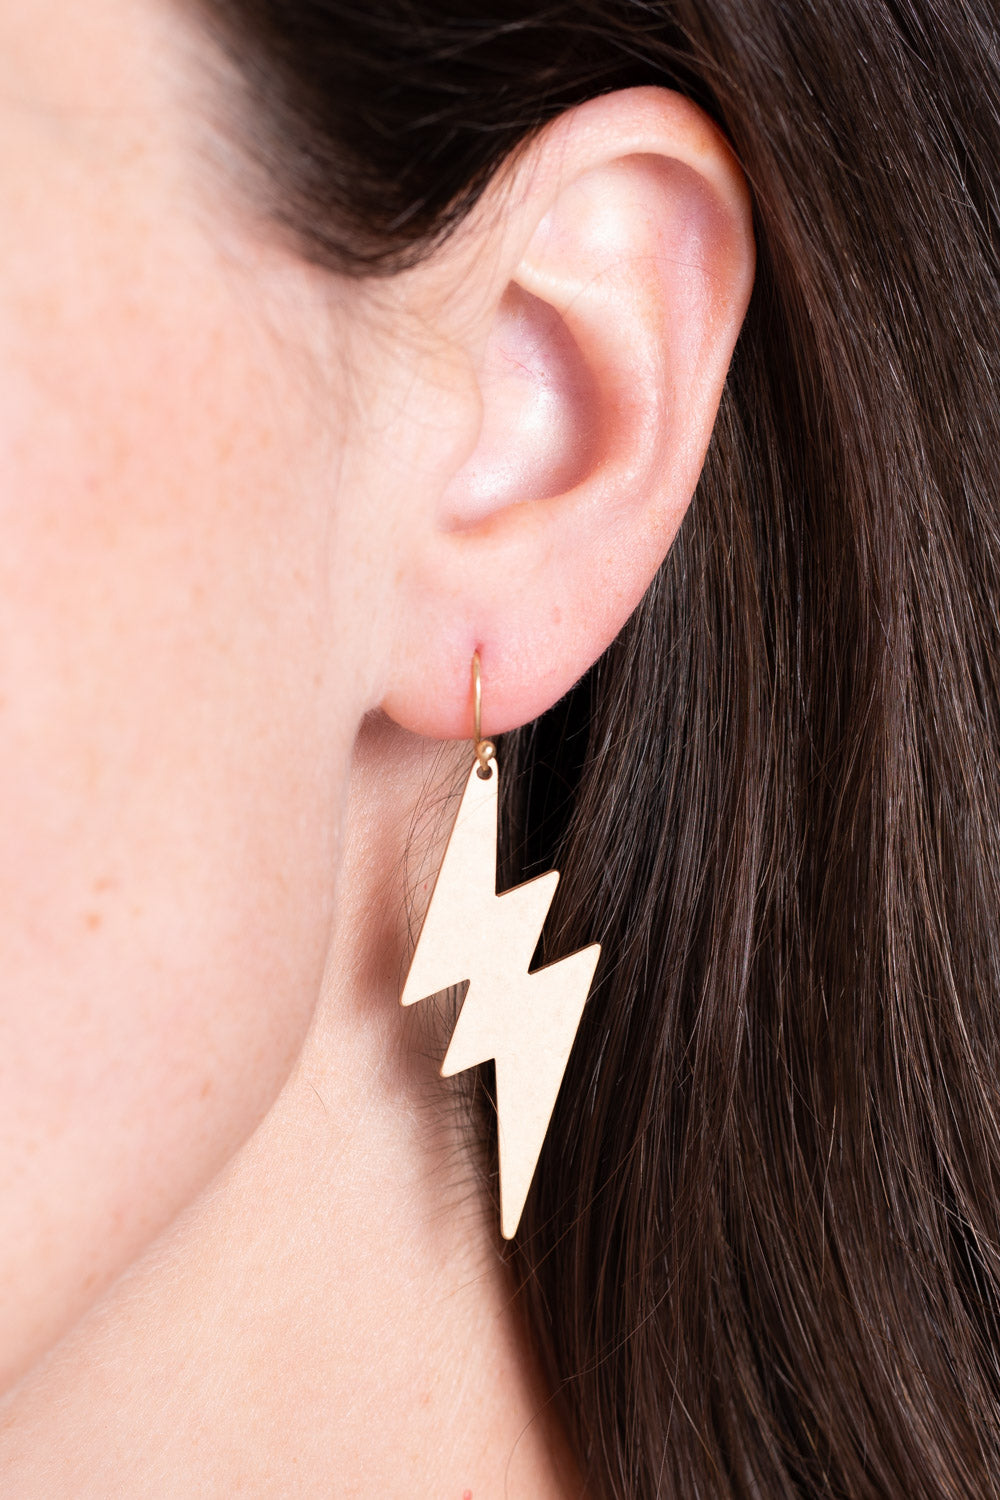 Type 3 Bolts of Lightning Earrings